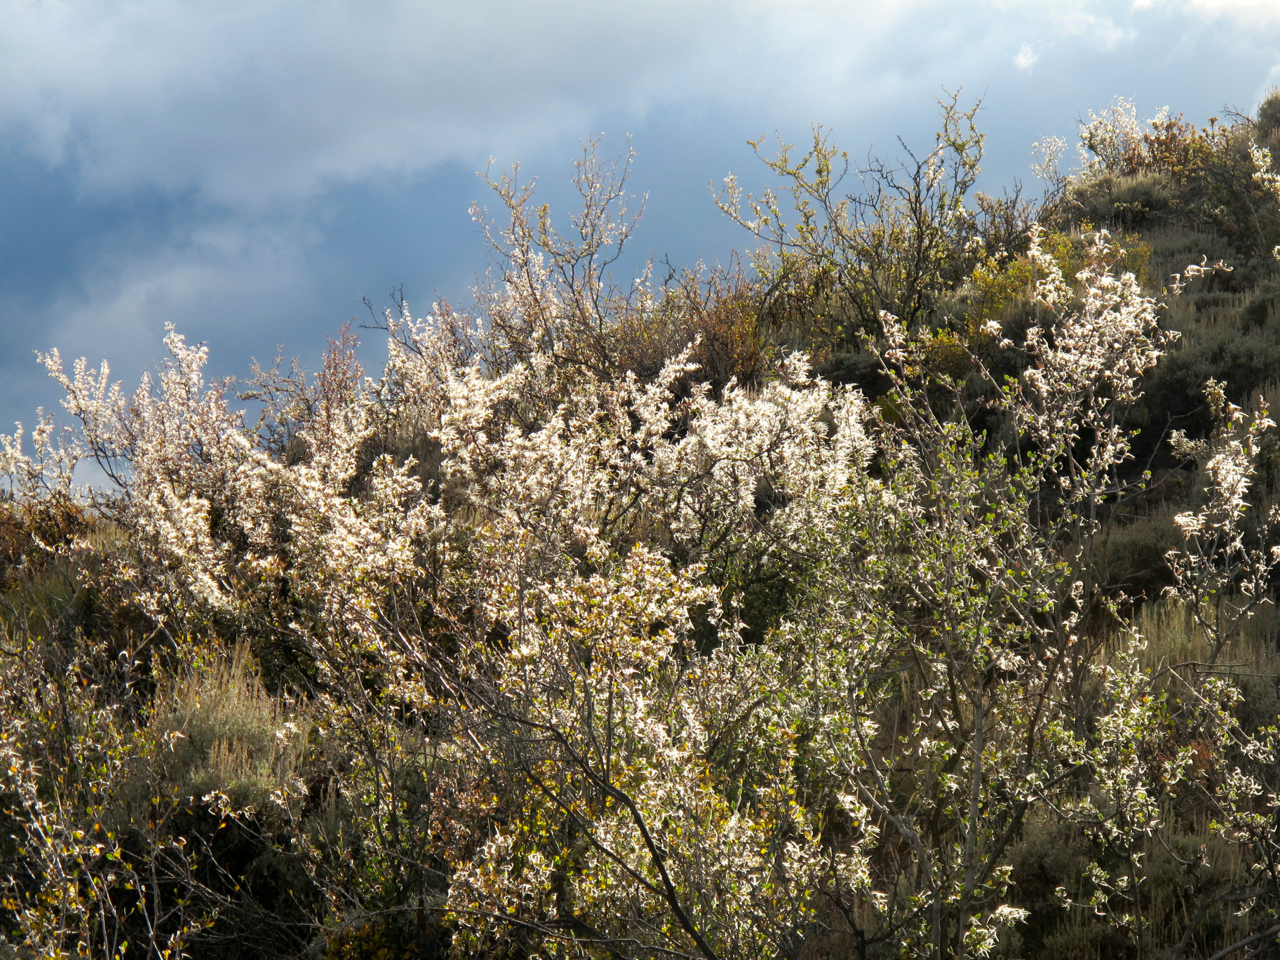 Making the backlit mountain mahogany shrubs particularly lovely against gray clouds...